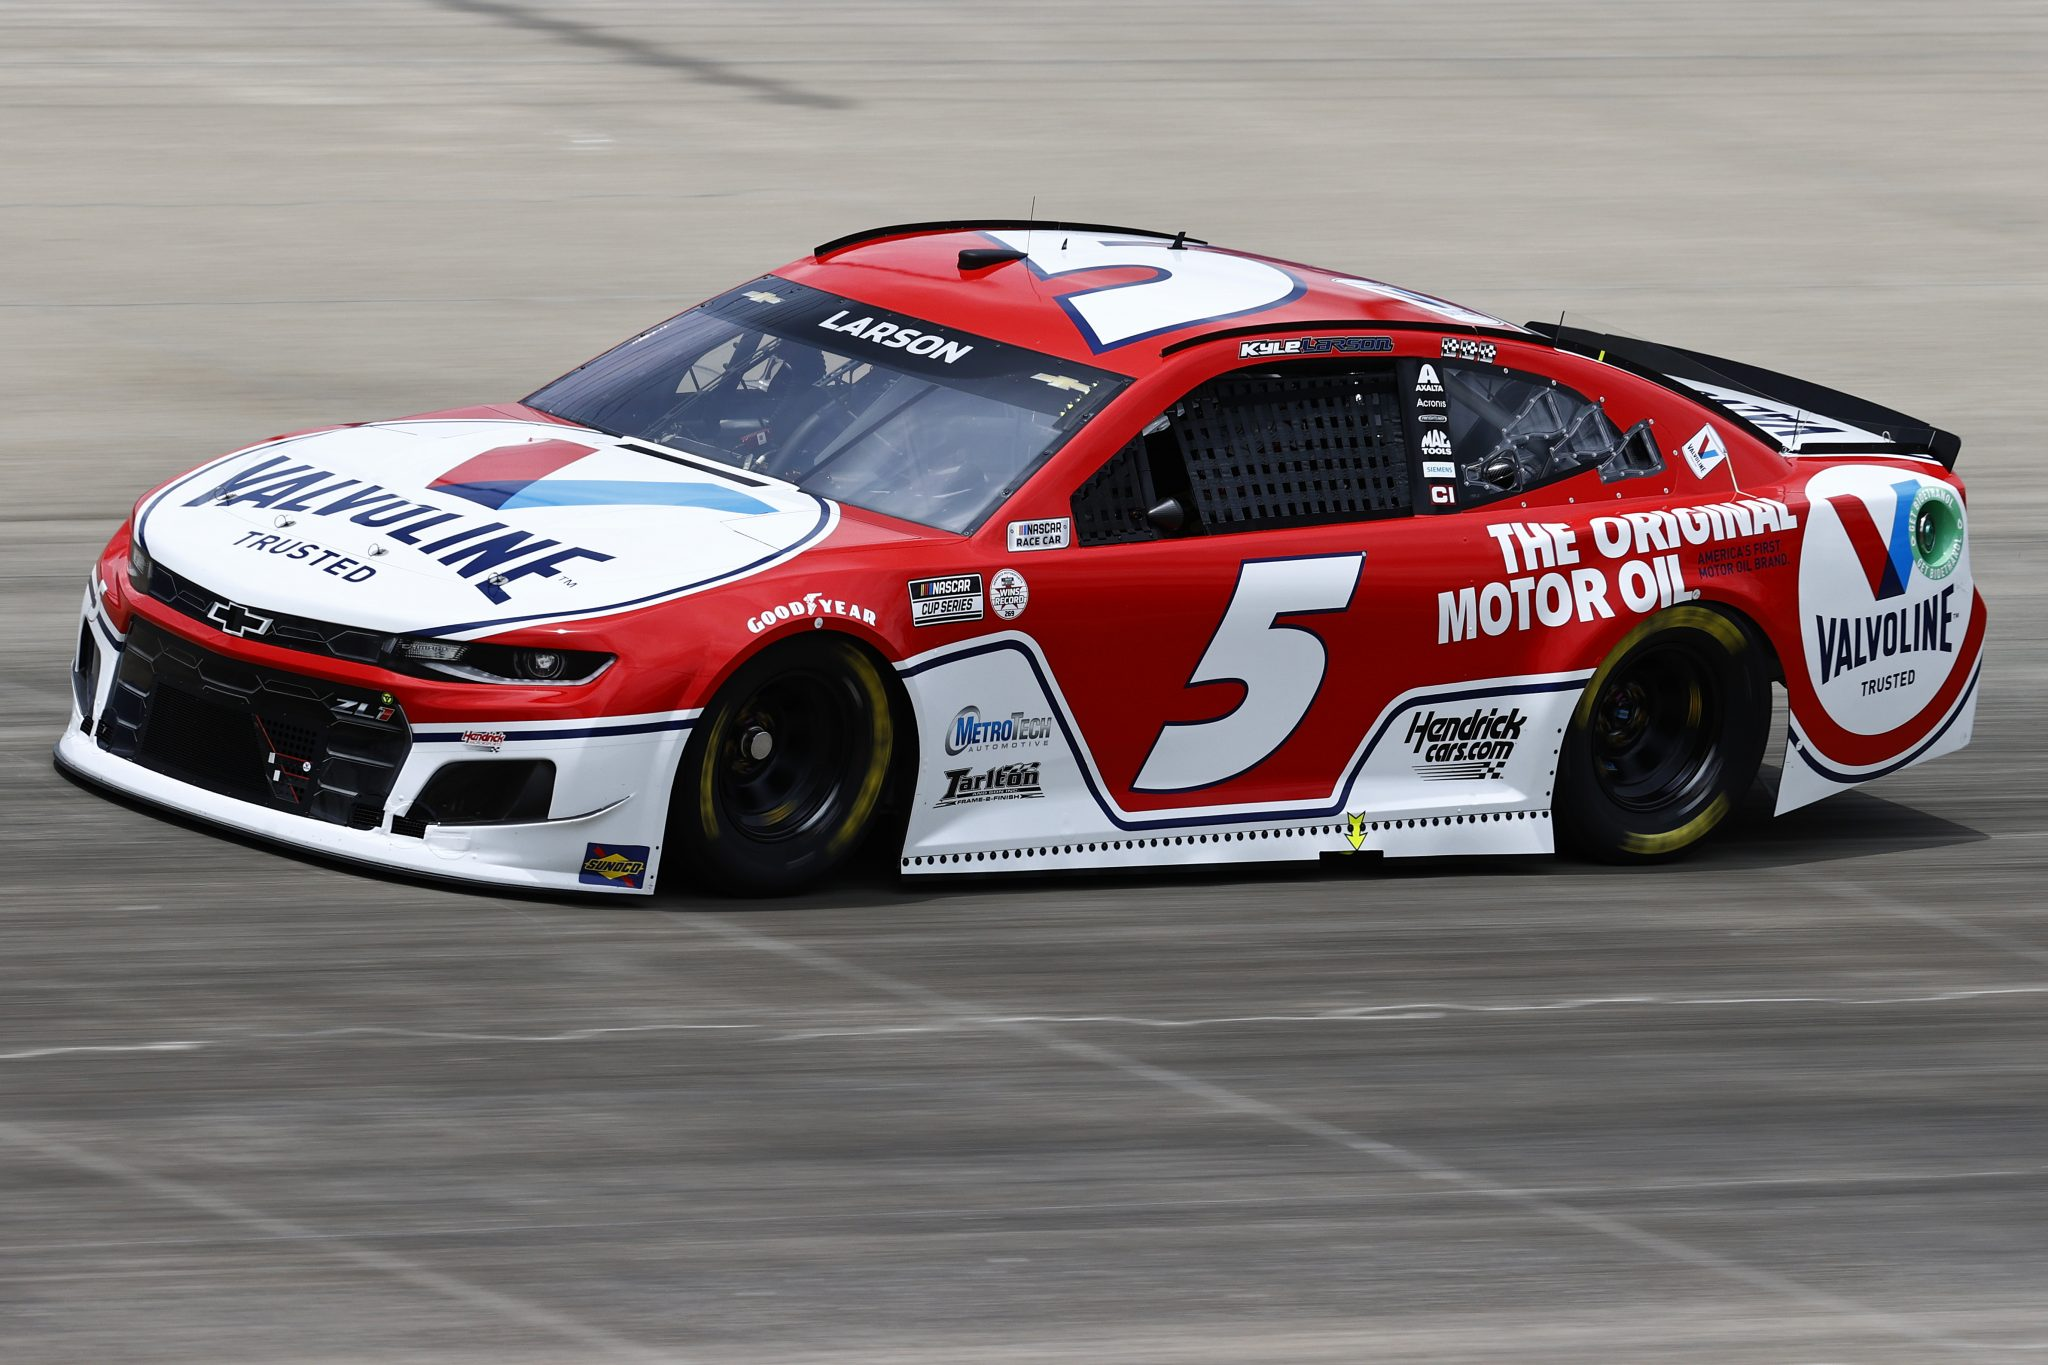 LEBANON, TENNESSEE - JUNE 19: Kyle Larson, driver of the #5 Valvoline Chevrolet, drives during practice for the NASCAR Cup Series Ally 400 at Nashville Superspeedway on June 19, 2021 in Lebanon, Tennessee. (Photo by Jared C. Tilton/Getty Images) | Getty Images